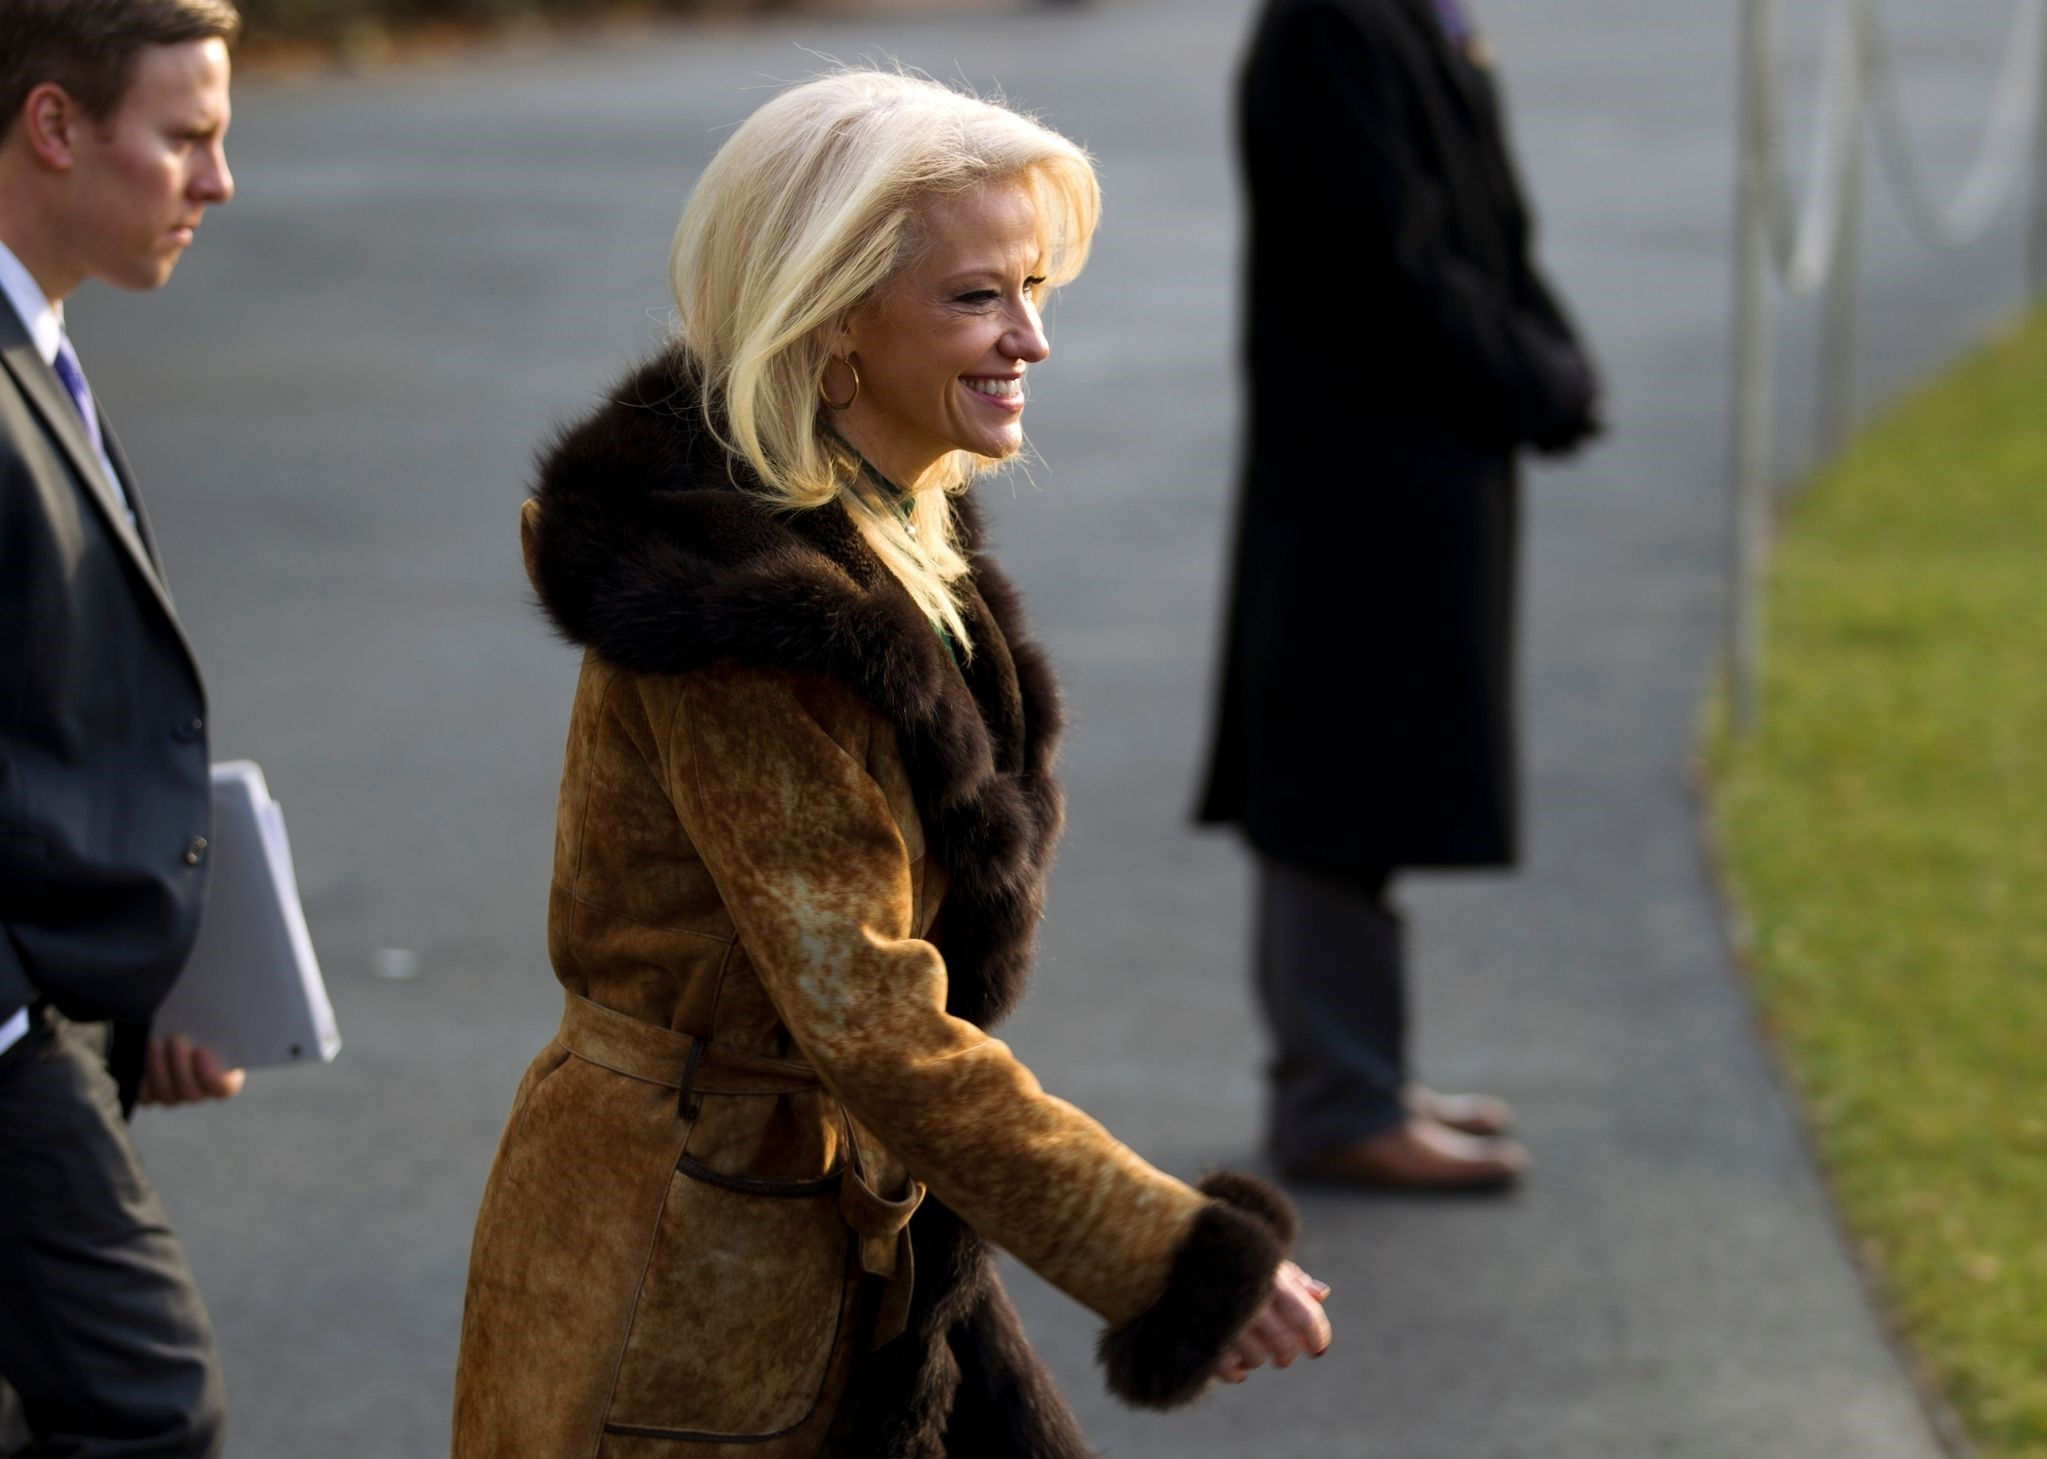 White House counselor Kellyanne Conway walks towards Marine One, during US President Donald Trump departure at the White House in Washington, DC, on December 2, 2017, en route to Joint Base Andrews. (AFP Photo)